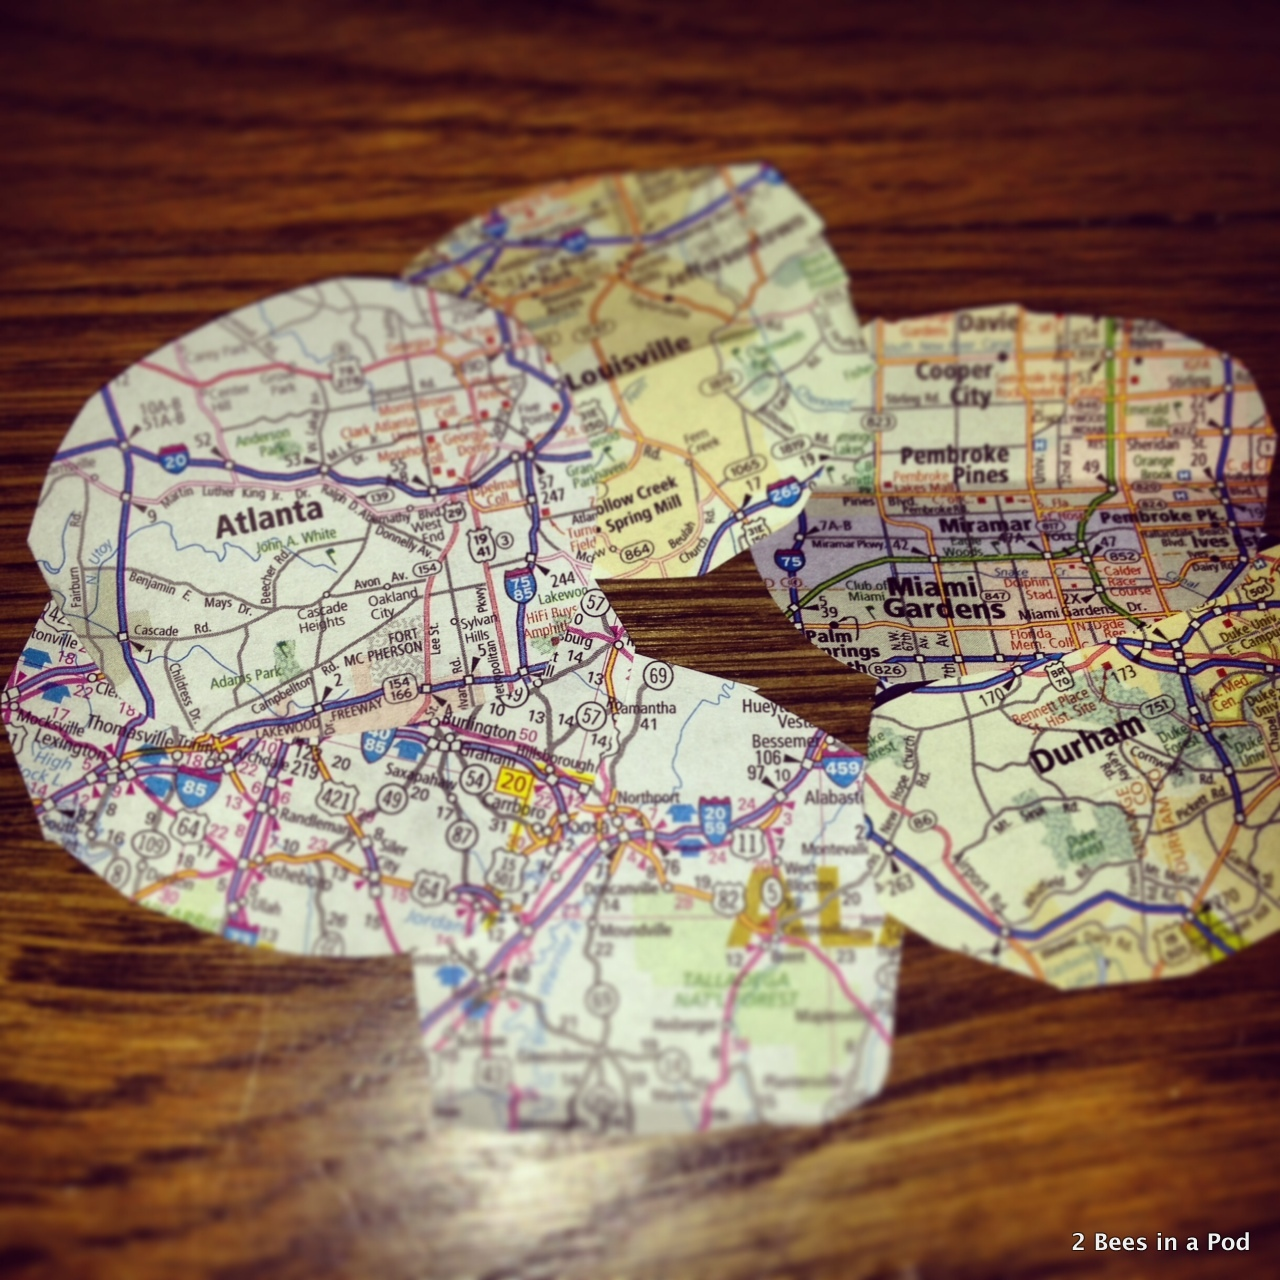 1-Maps cut into oversized circles